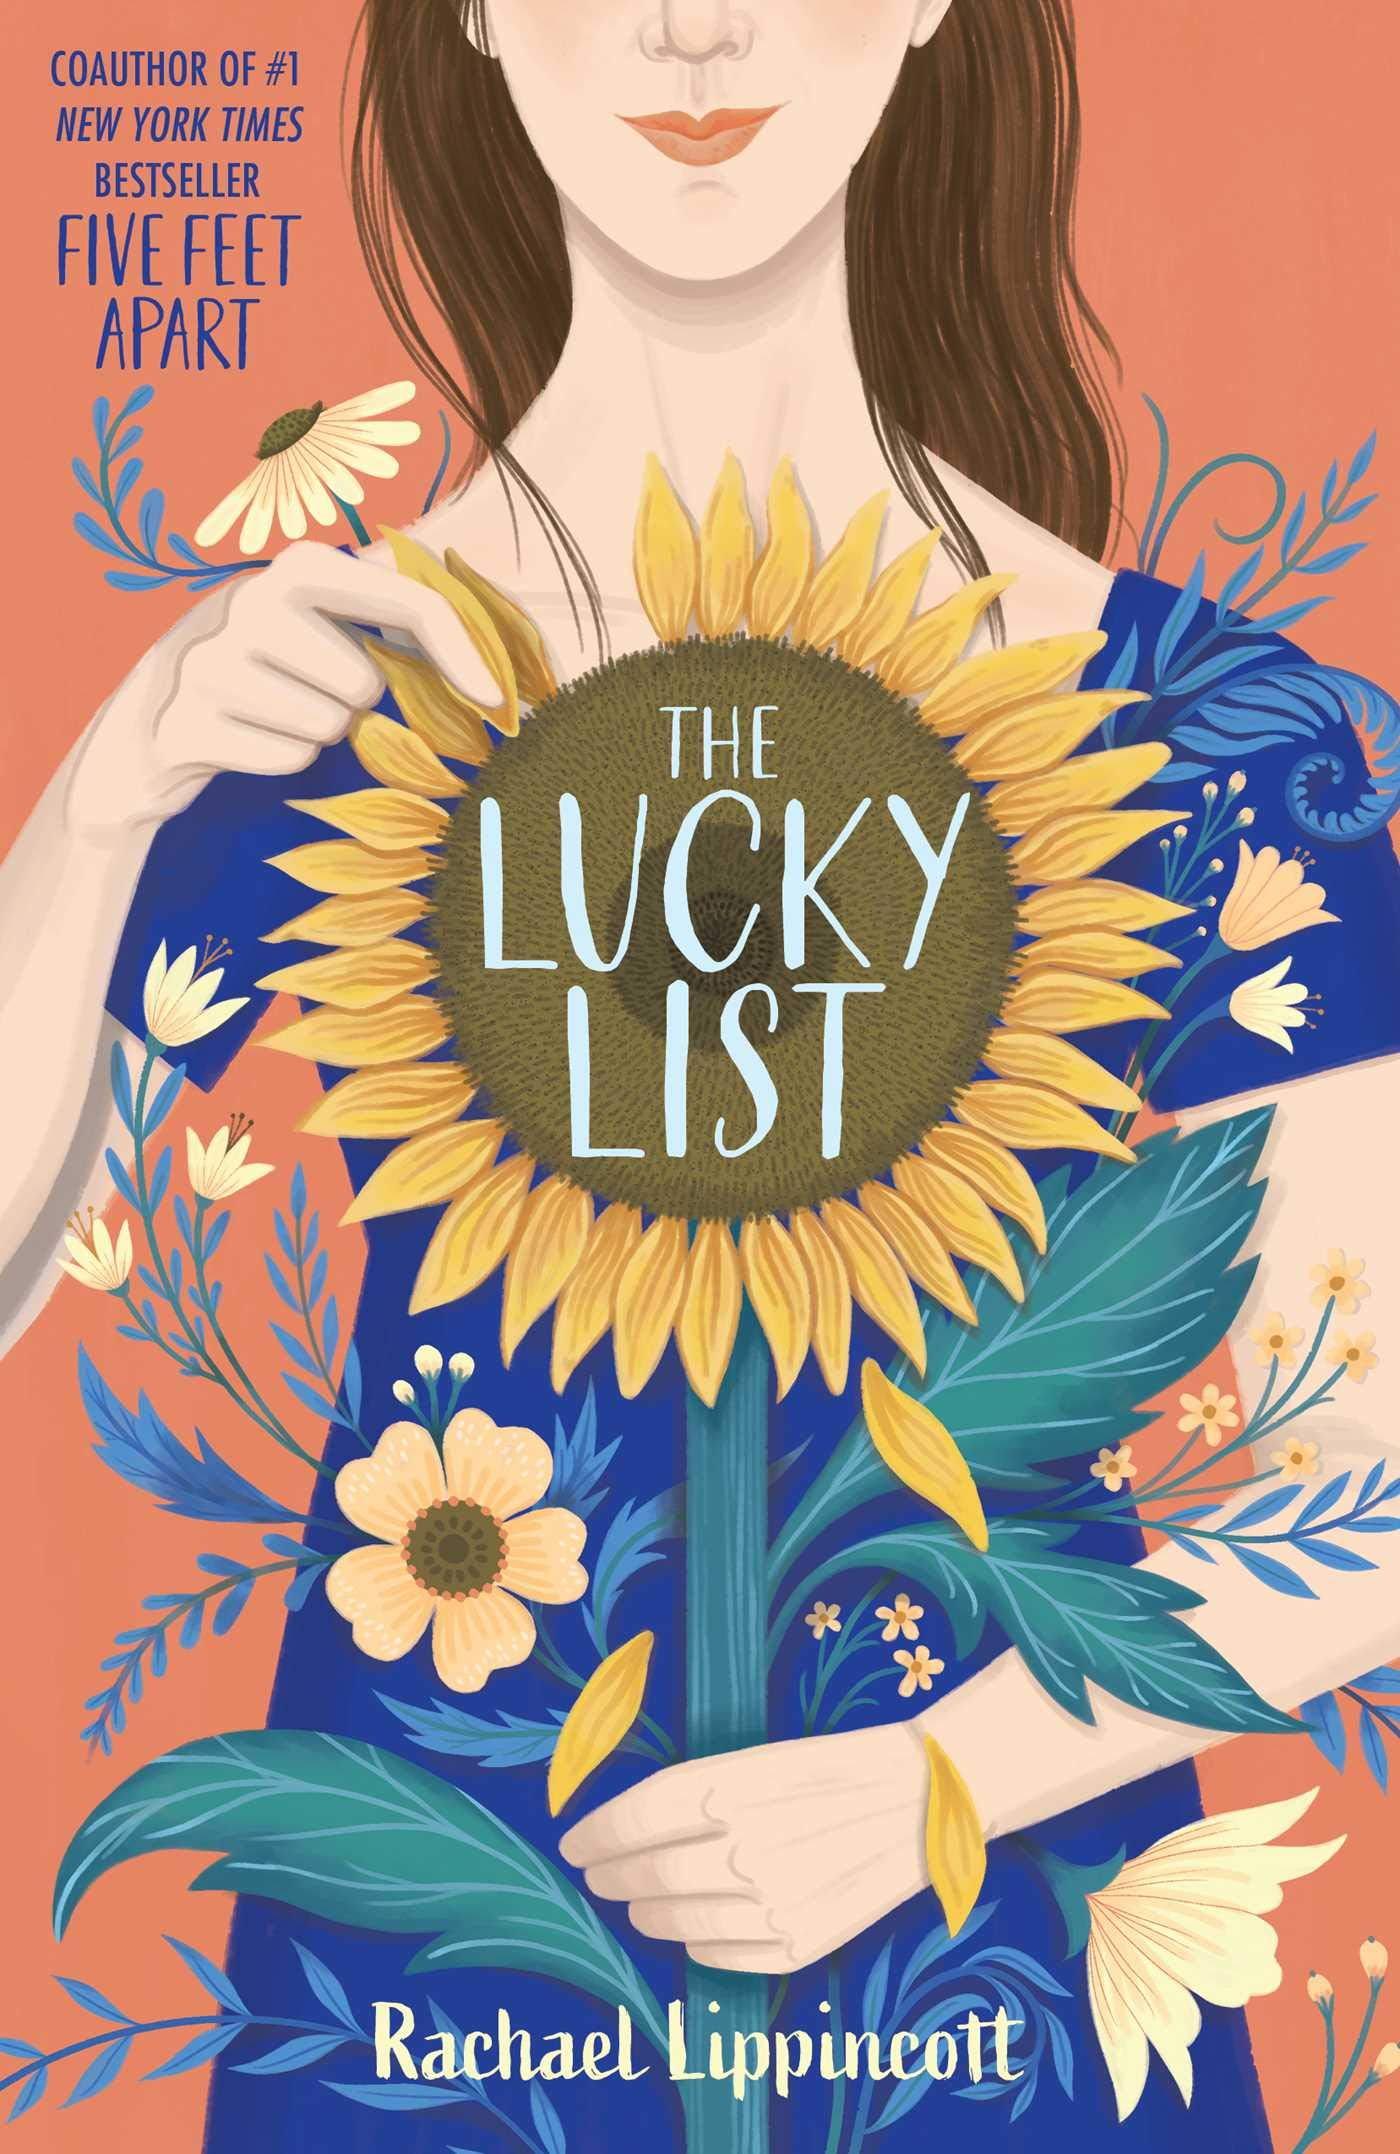 The cover of The Lucky List by Rachael Lippincott